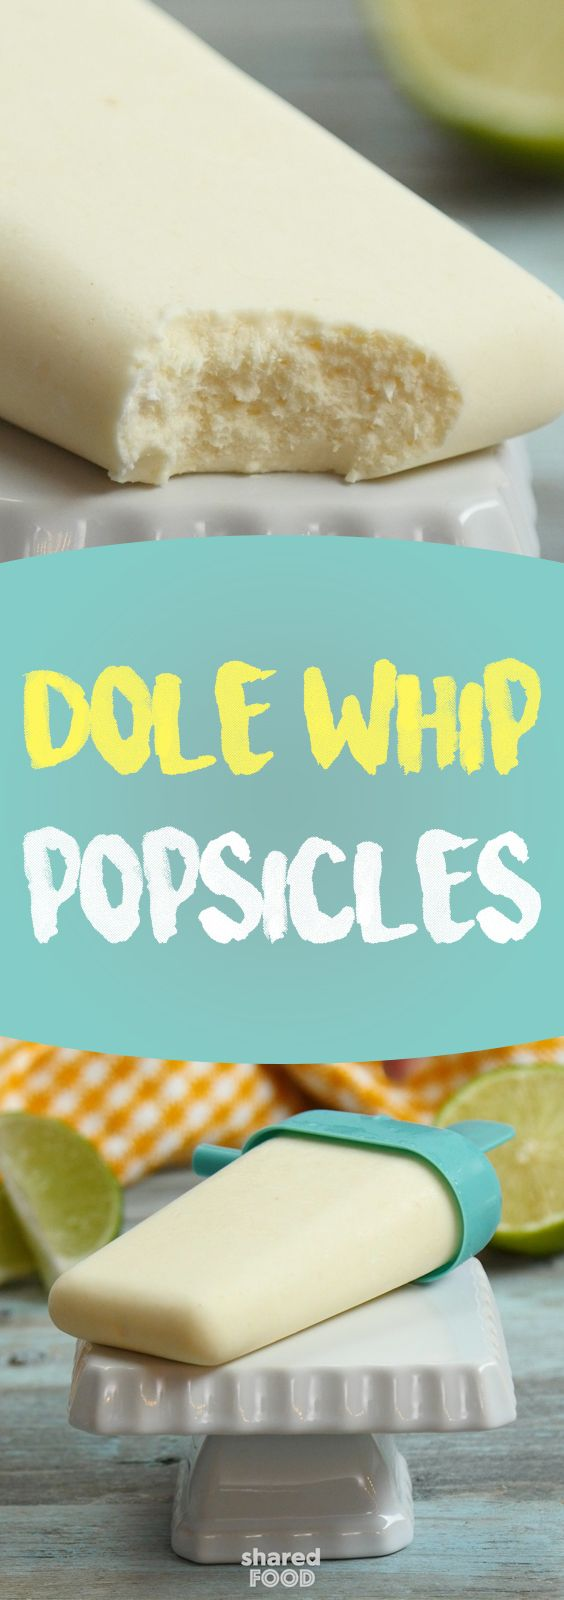 Dole Whip is well-known by Disney lovers as one of their most famous and loved sweet treats. Even if you haven't tried the creamy soft serve, if you're a pineapple lover, this one's for you. These Dole Whip Popsicles are the perfect way to cool off in the summer heat. All it takes is a simple blitz through the blender, pop them into popsicle molds, and you've got a treat that can be kept frozen until you're ready for a cool-off session. The whole family will love these!